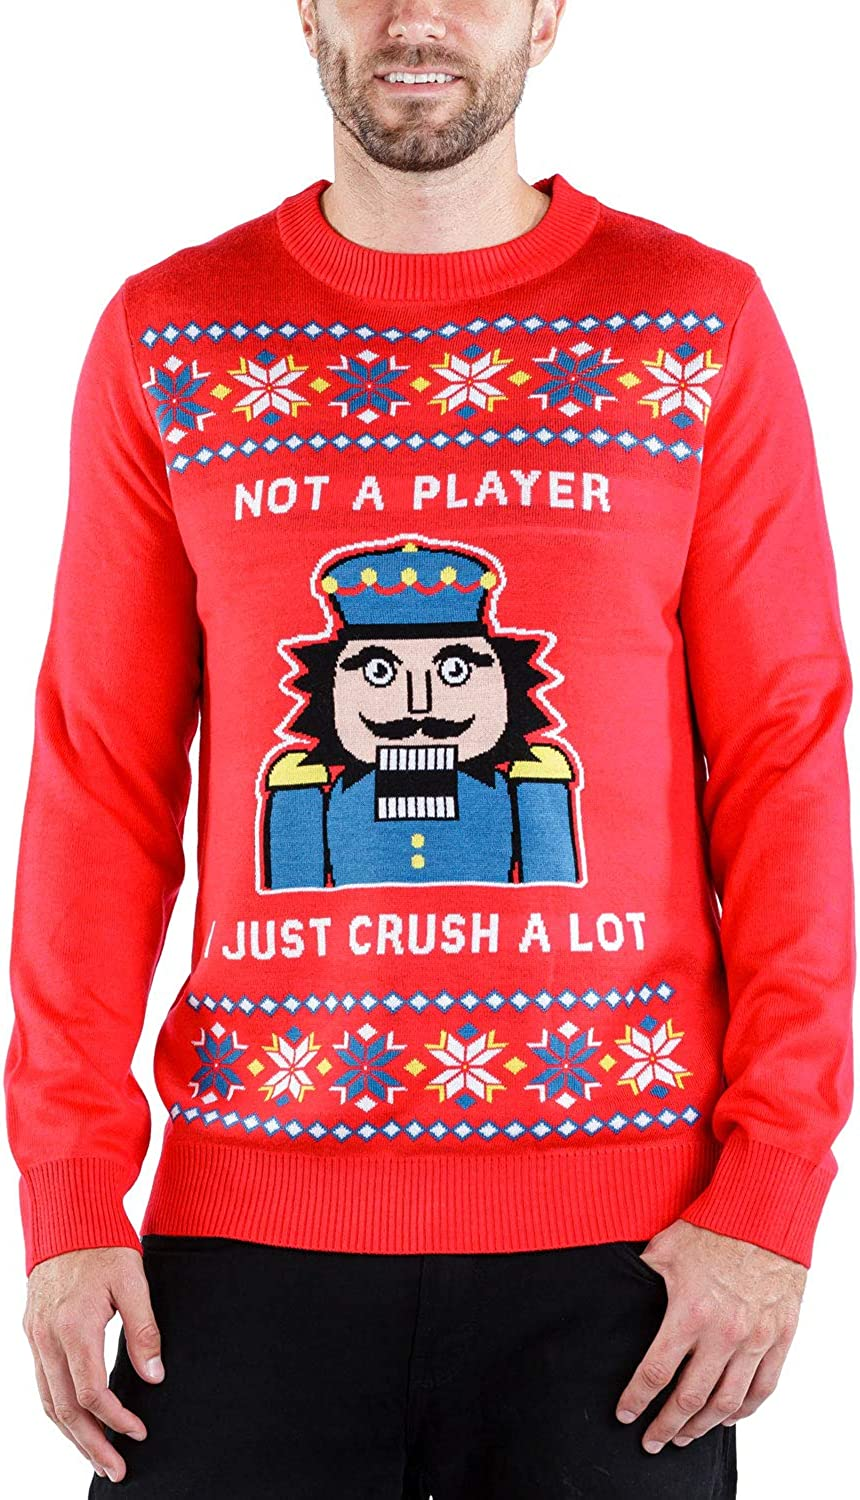 Men's I Just Crush A Lot Sweater Cracker Nut mart - Christmas Funny S Don't miss the campaign